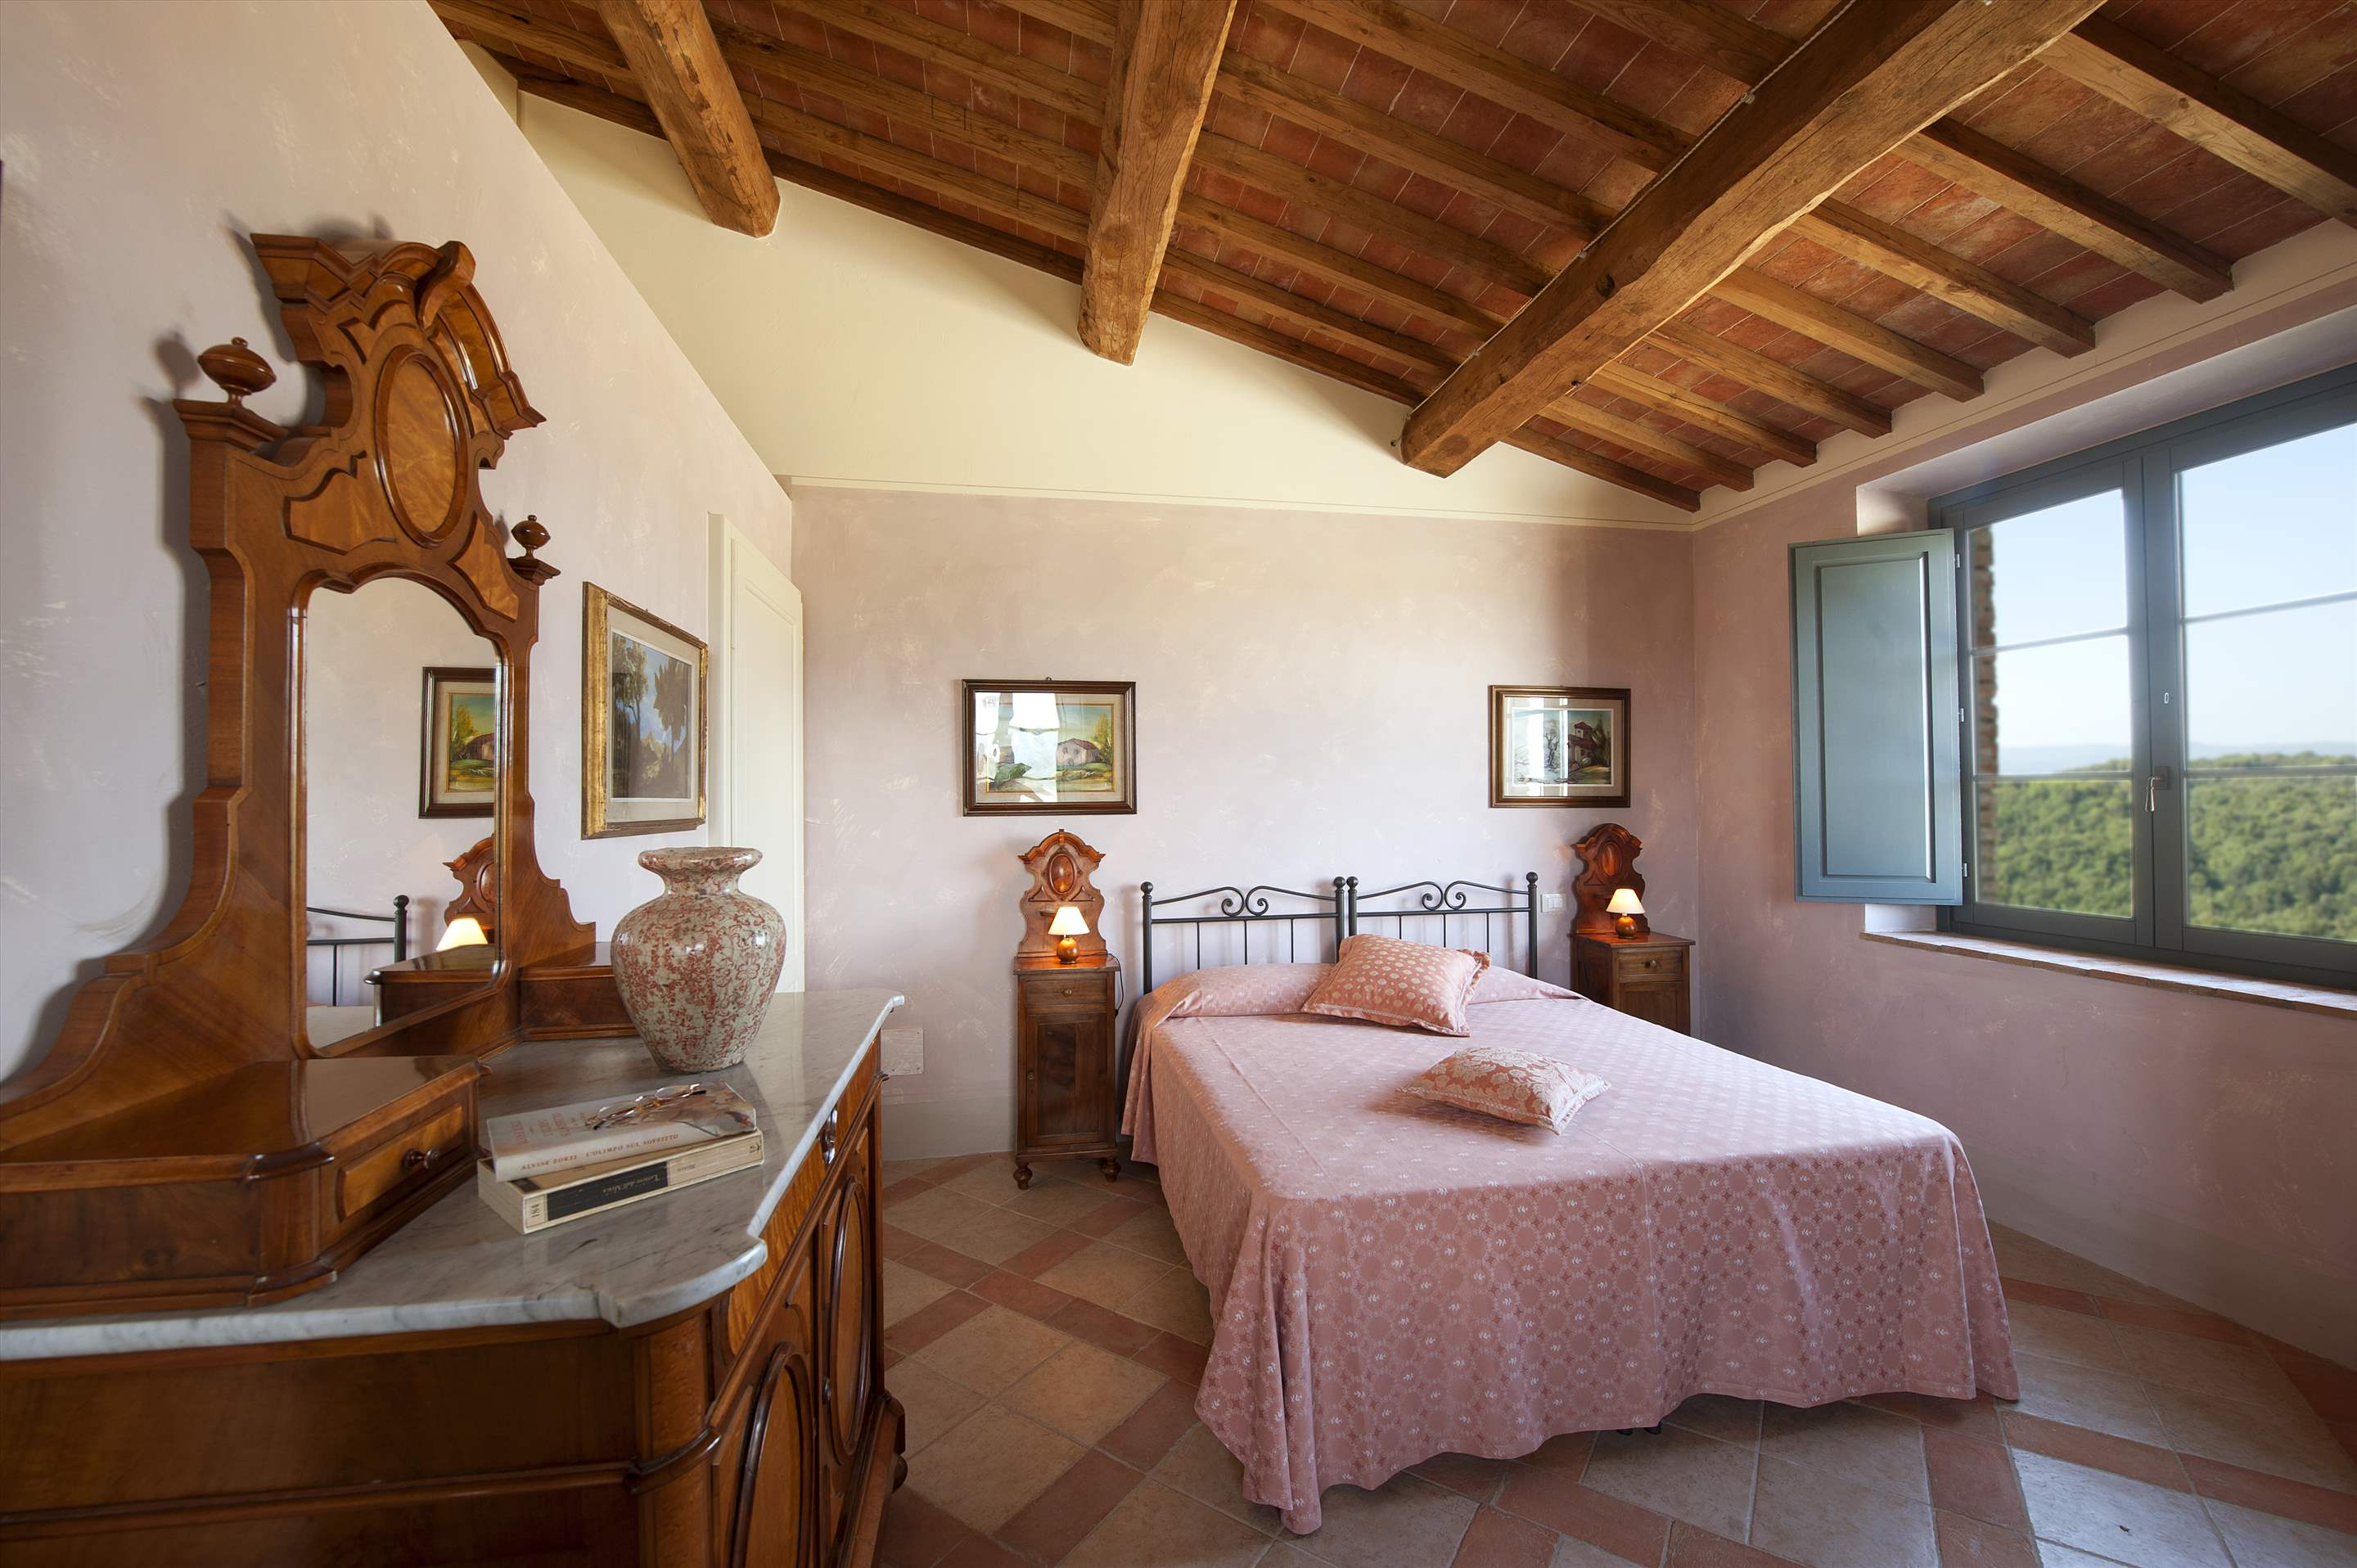 Podere Casacce, Ground Floor, 4 bedroom villa in Tuscany Coast, Tuscany Photo #28